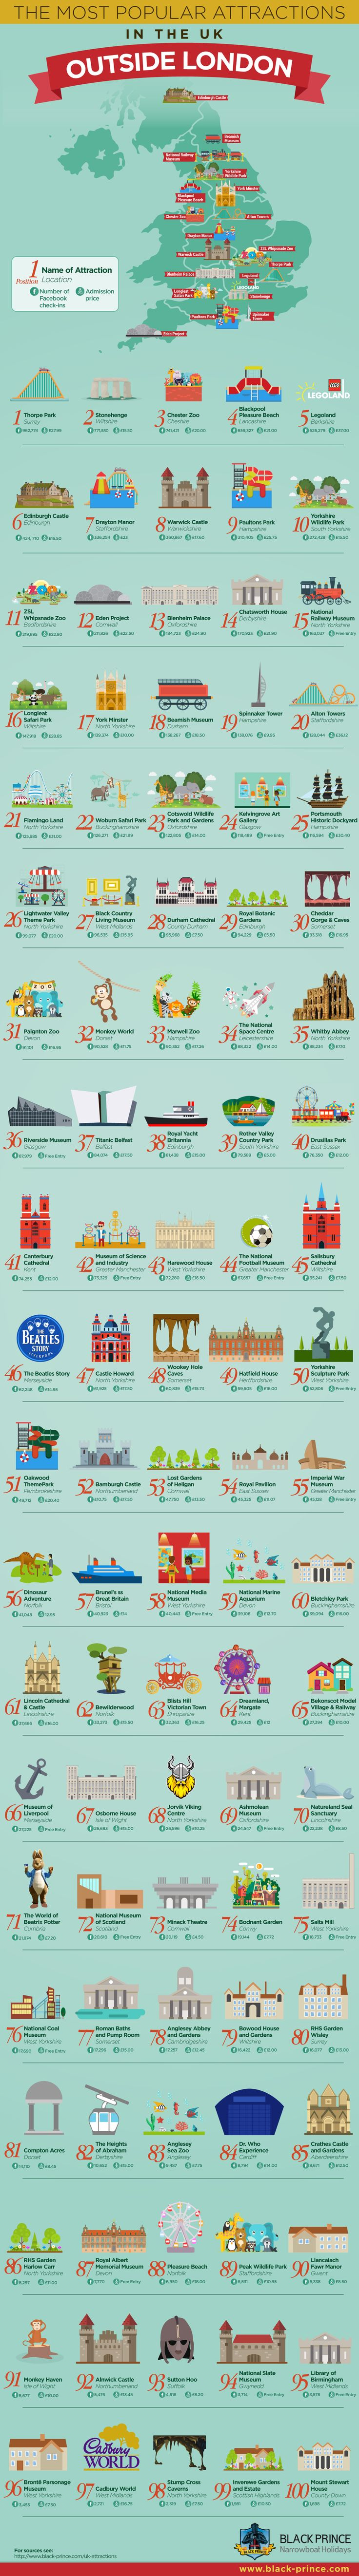 The 100 coolest things to do in the UK (outside London)